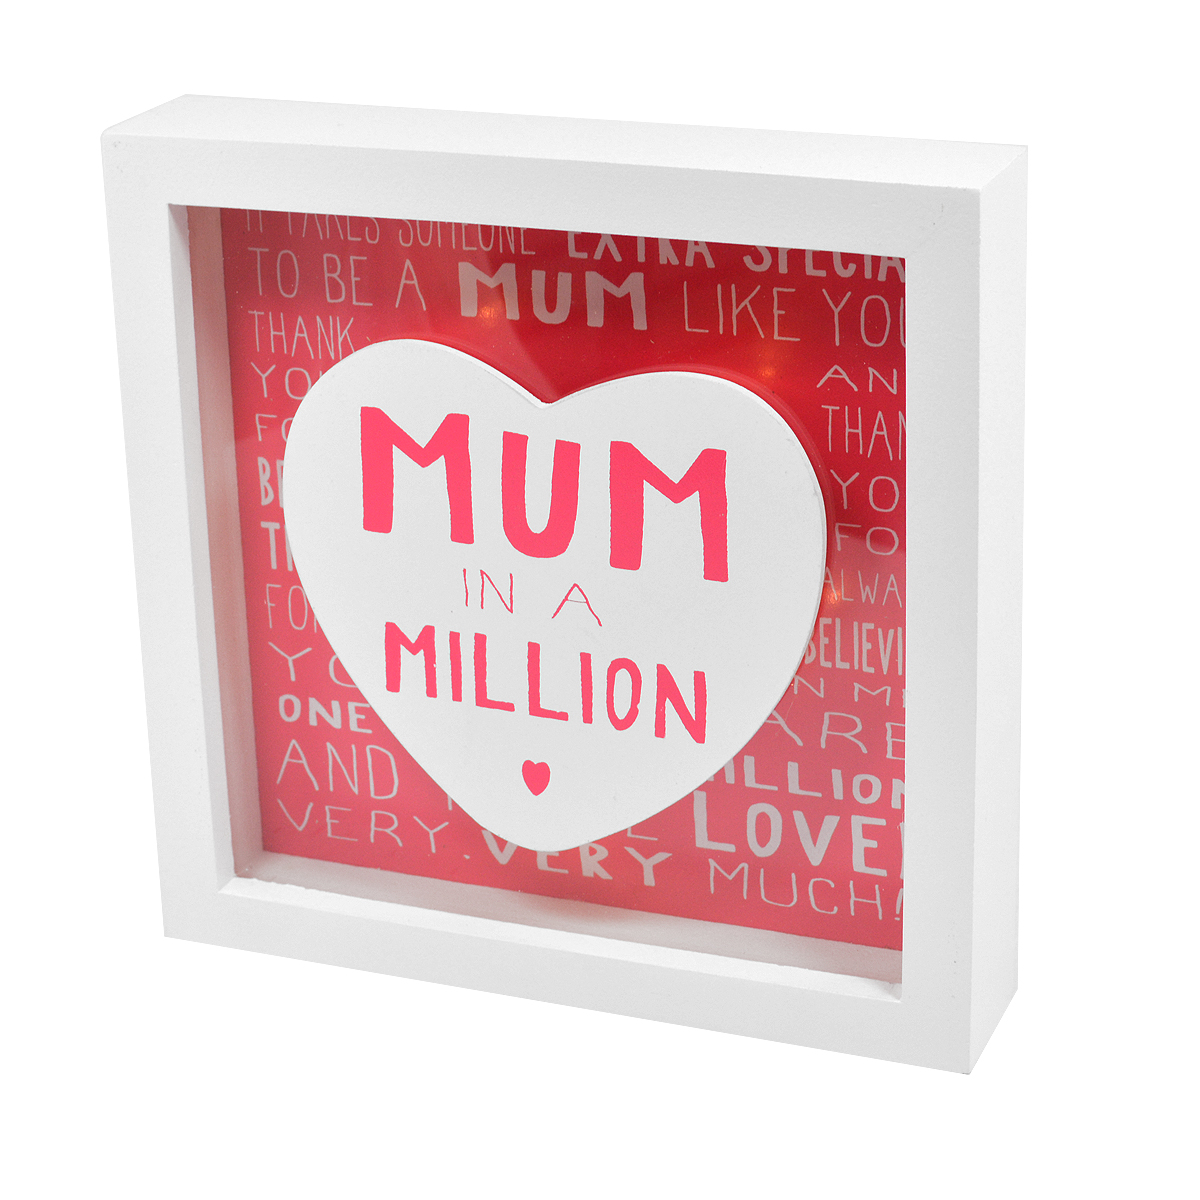 Message Of Love Mum In A Million Light Up Box Frame | Gifts